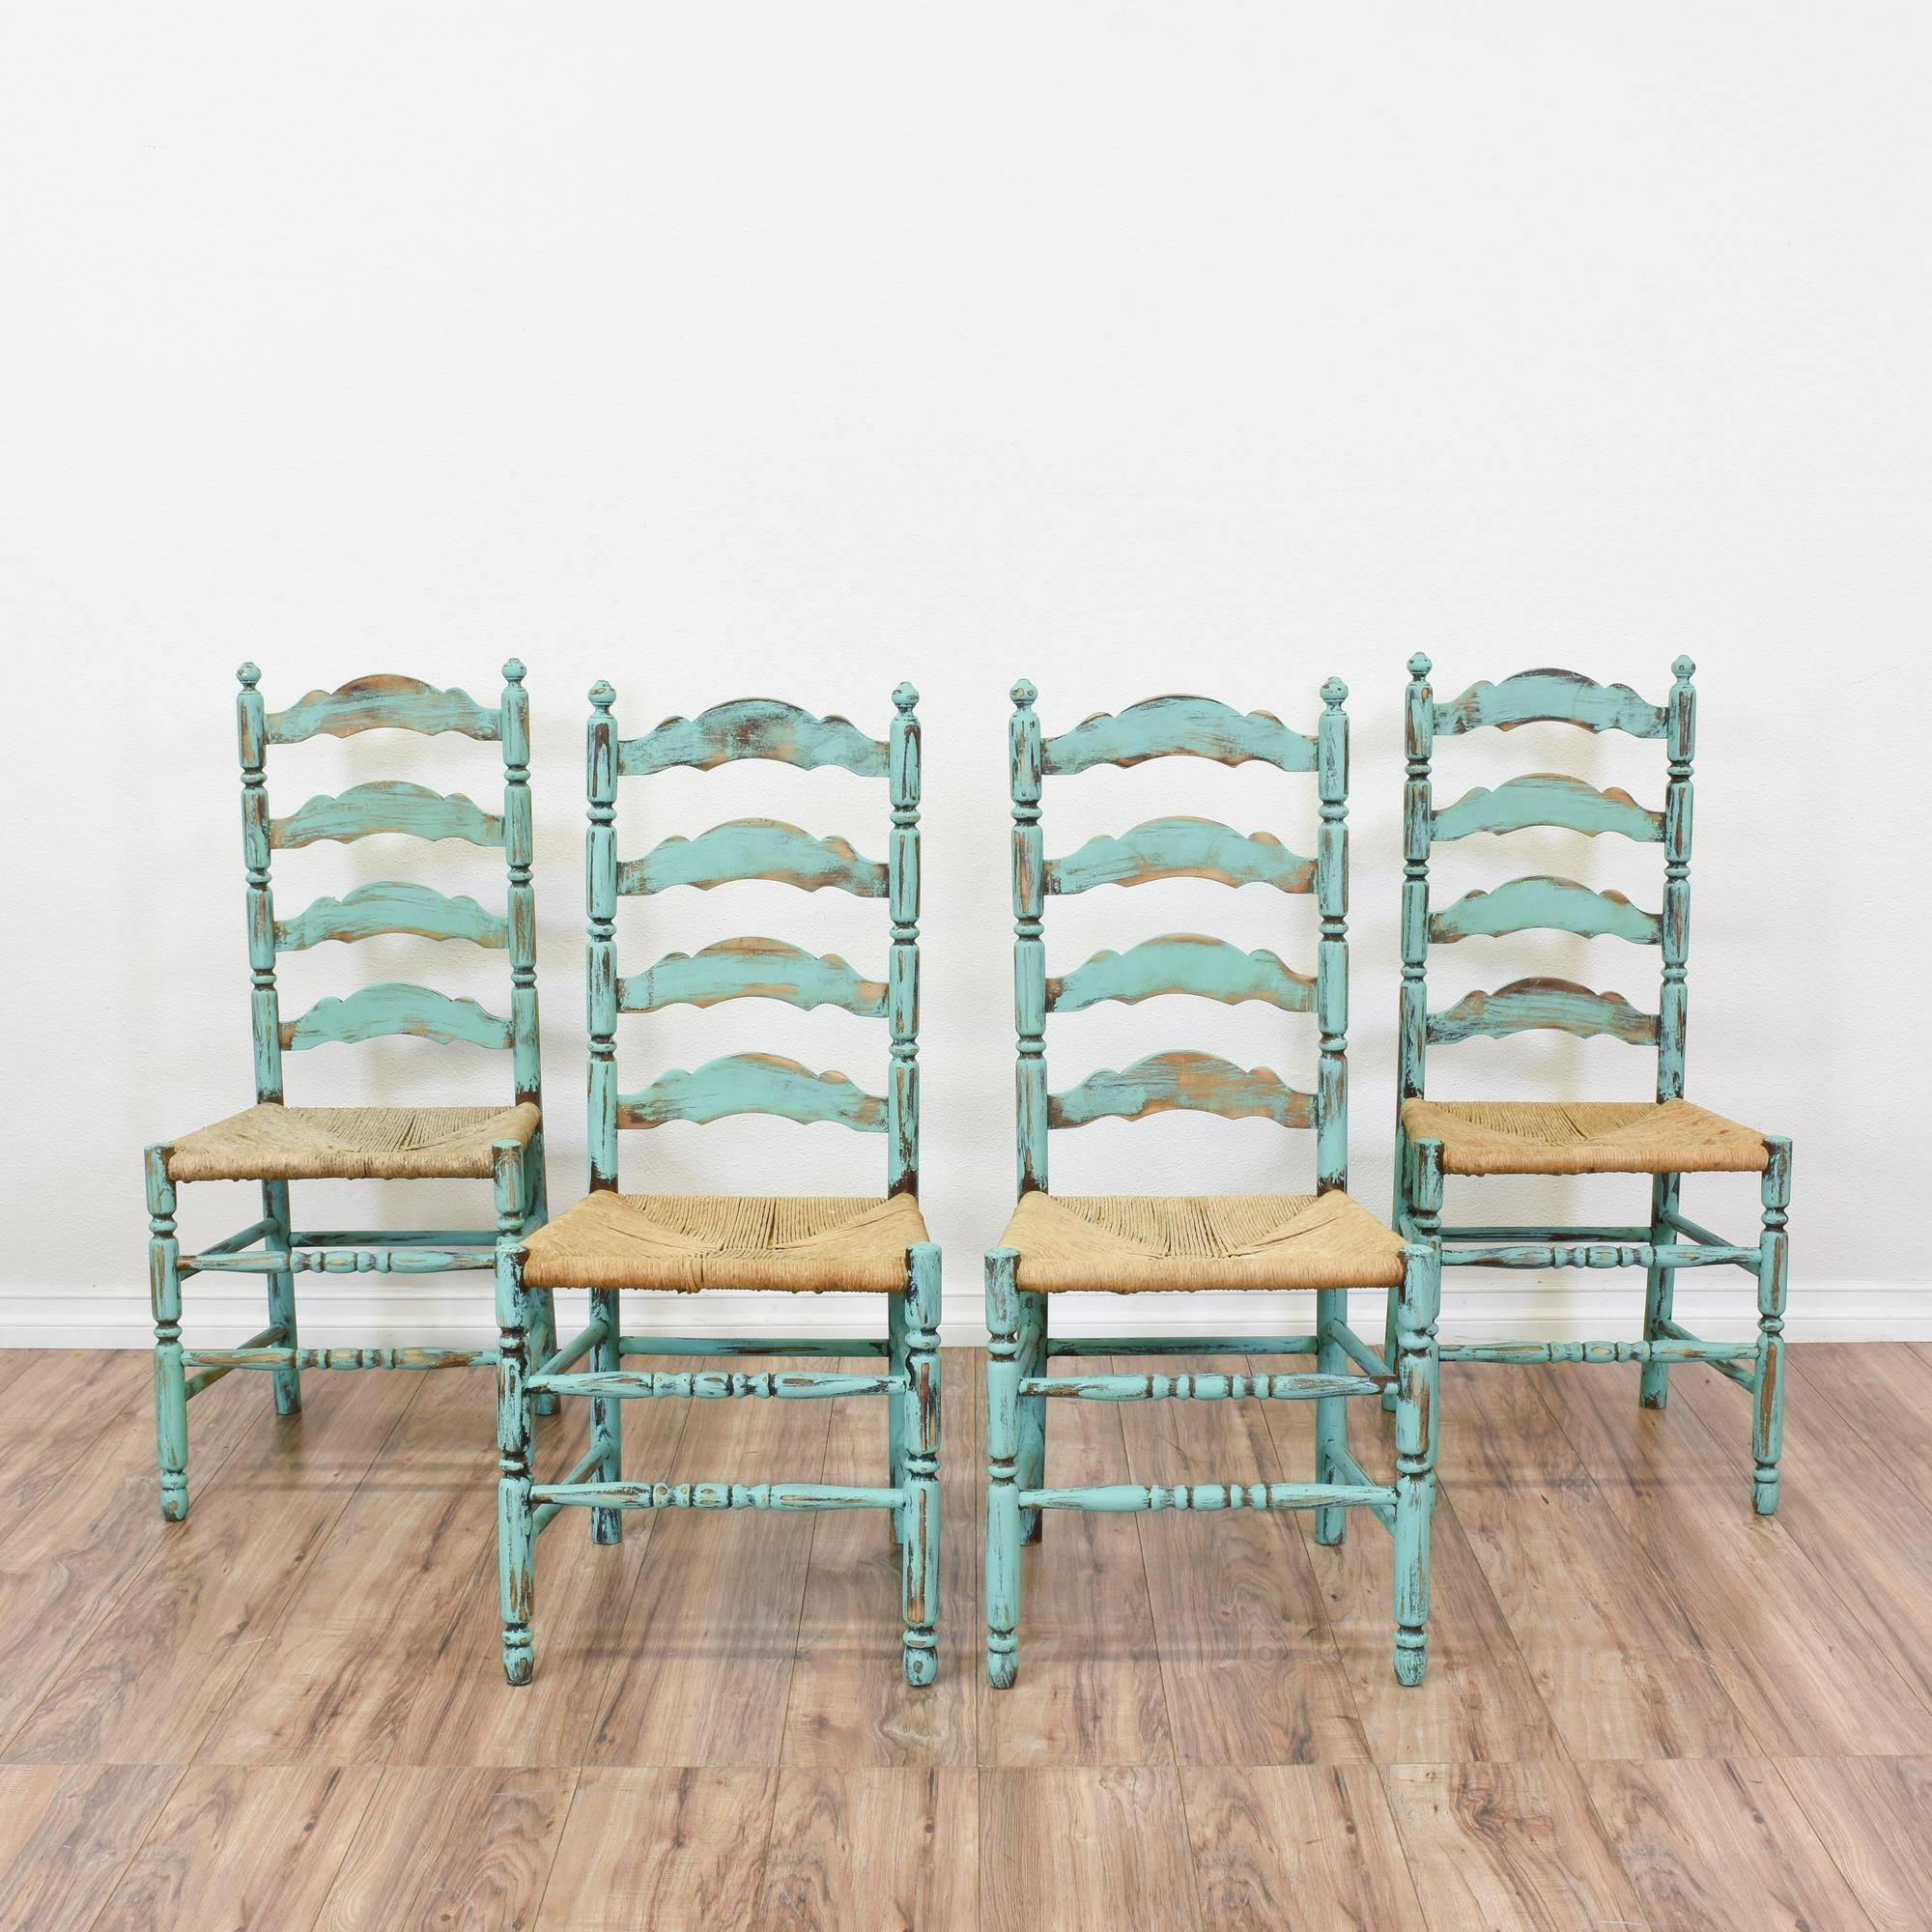 This Set Of 4 Shabby Chic Ladder Back Chairs Are Featured In A Solid Wood With Distressed Light Blue Chalk Paint Finish These Dining Great